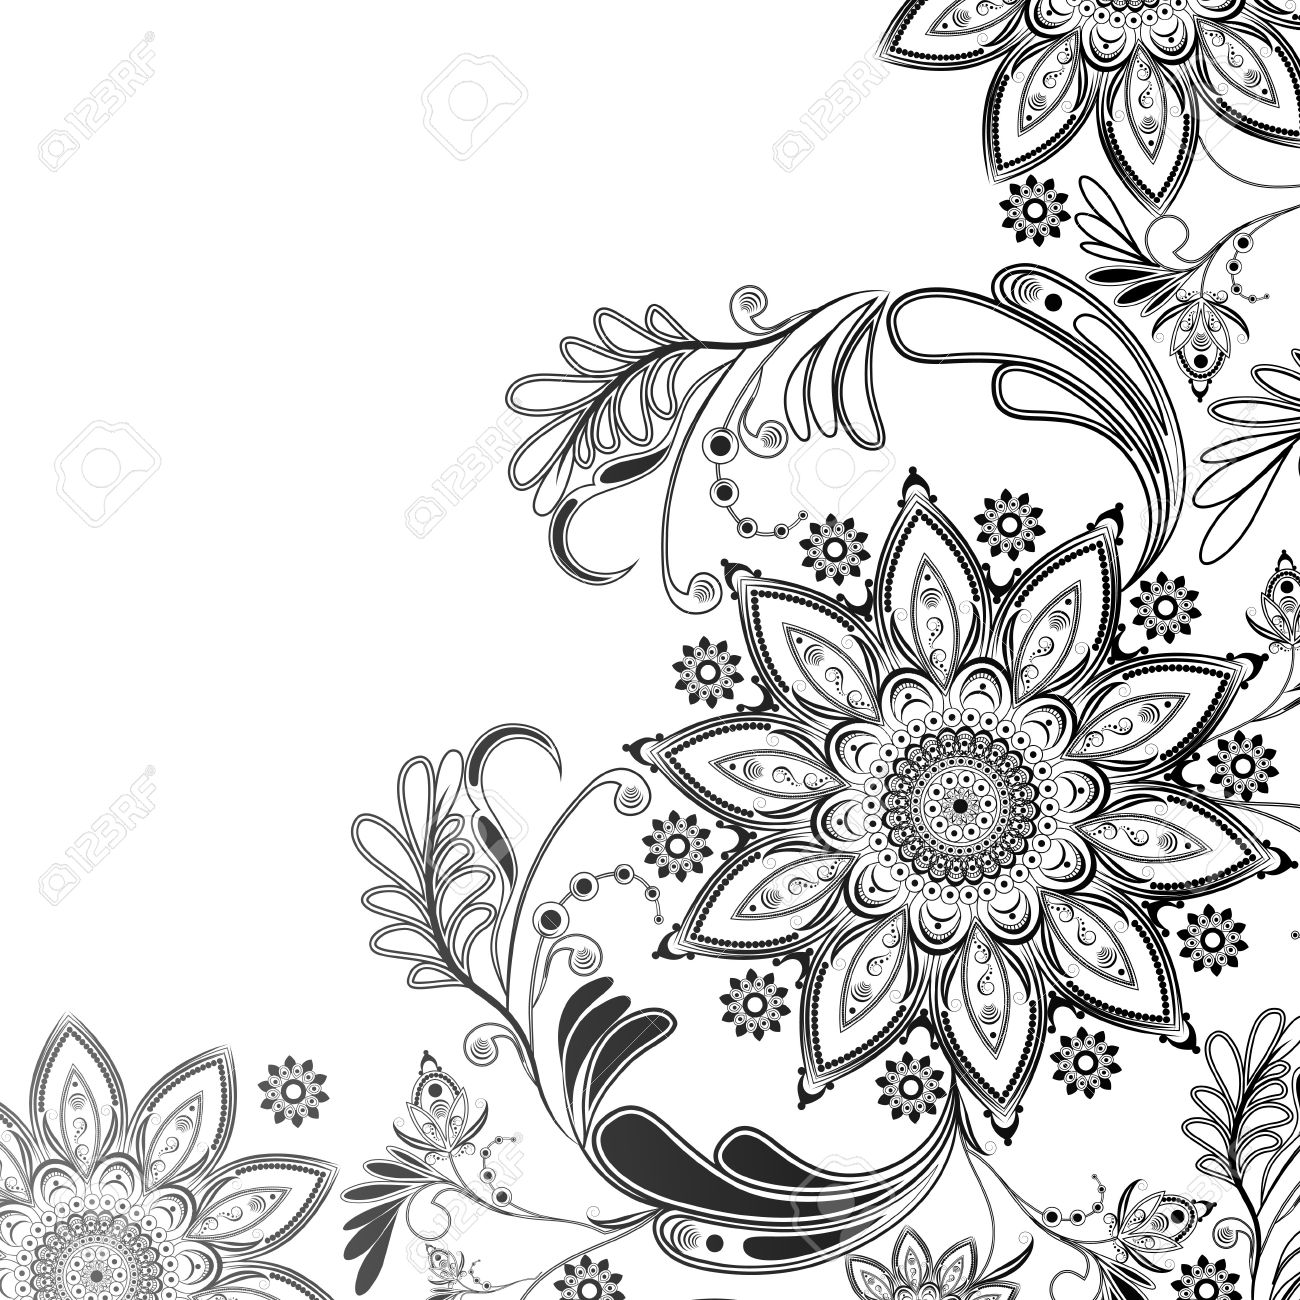 Abstract floral pattern in black and white on the eastern motif on a transparent background stock